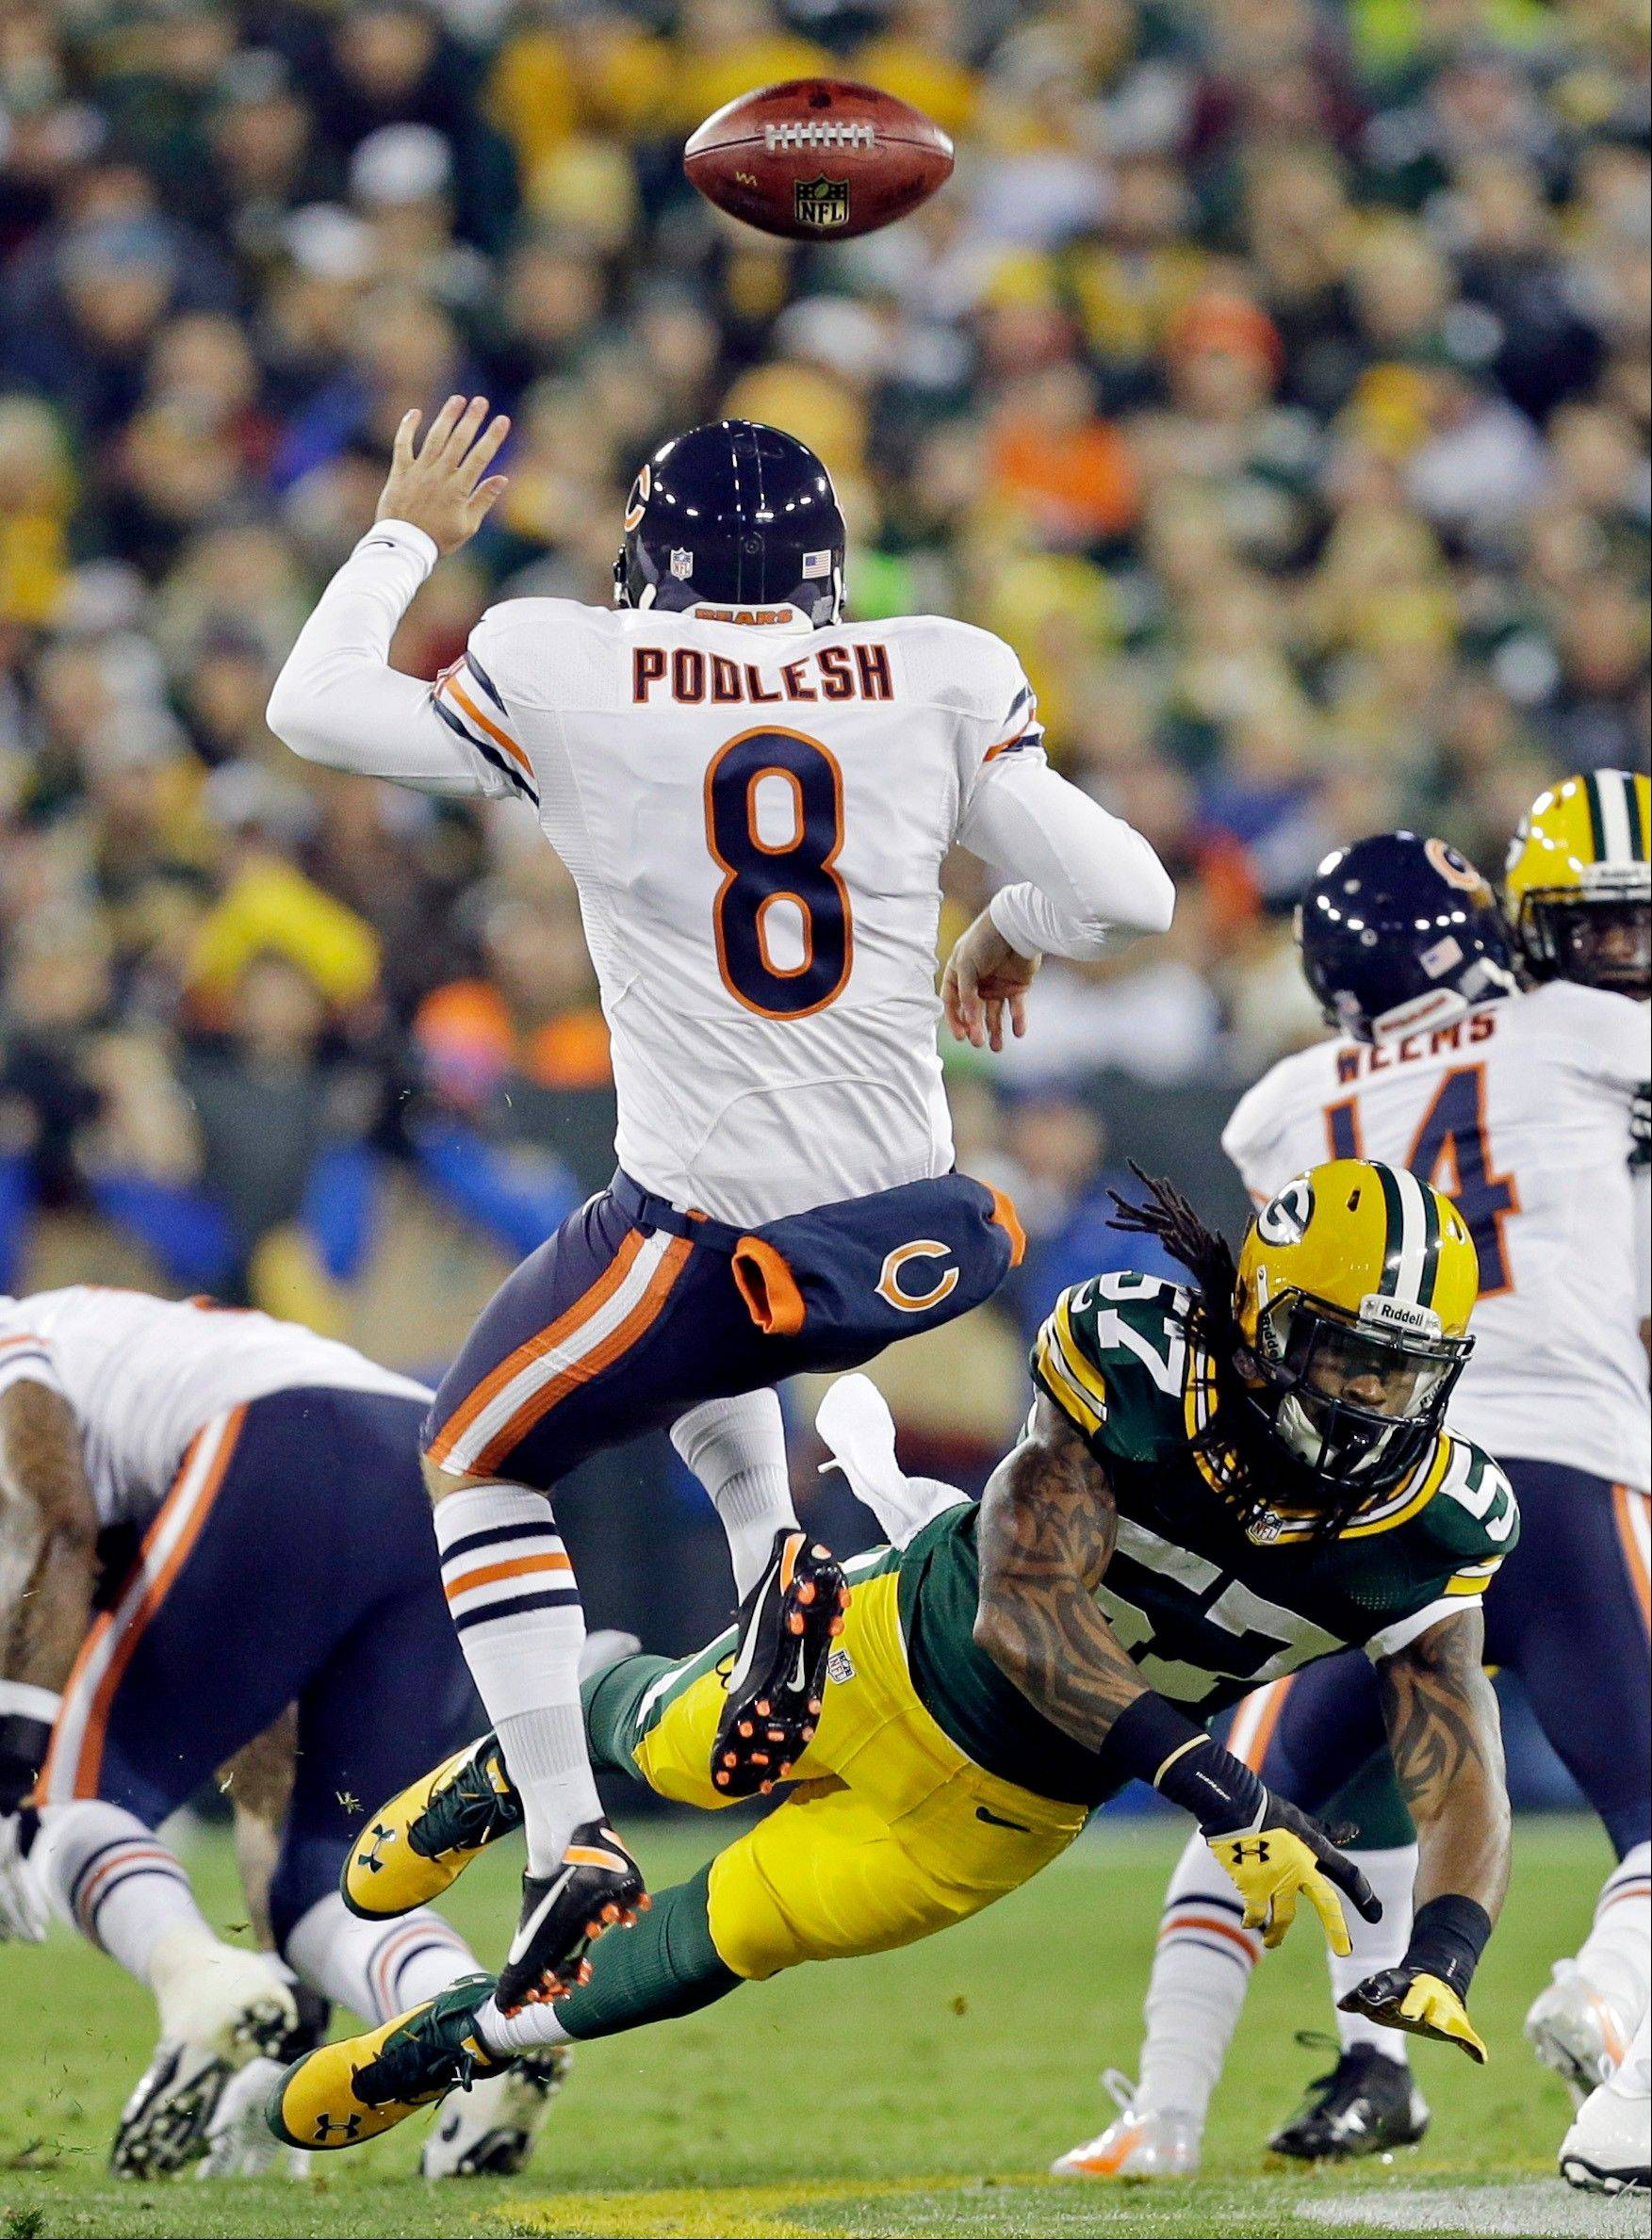 Green Bay Packers' Jamari Lattimore (57) blocks the punt of Chicago Bears' Adam Podlesh (8) during the first half .